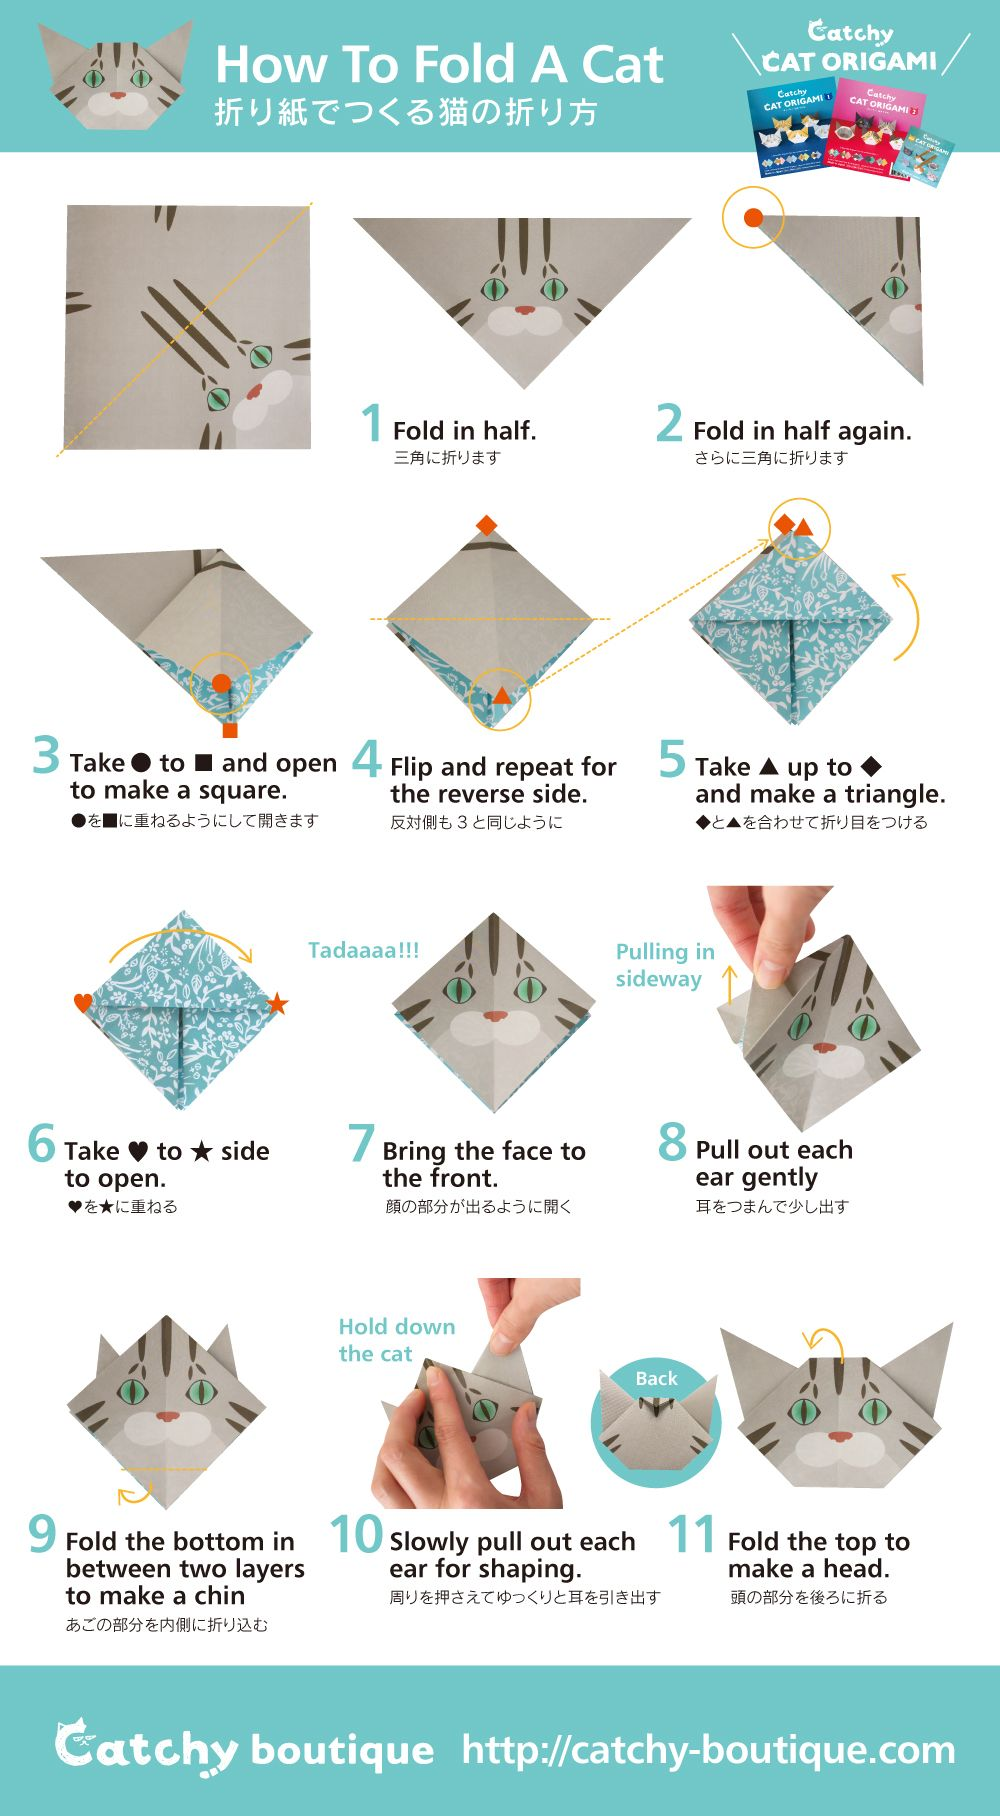 How To Make Origami Cat Fold OrigamiOrigami Unique DIY Easy For Kids Animals